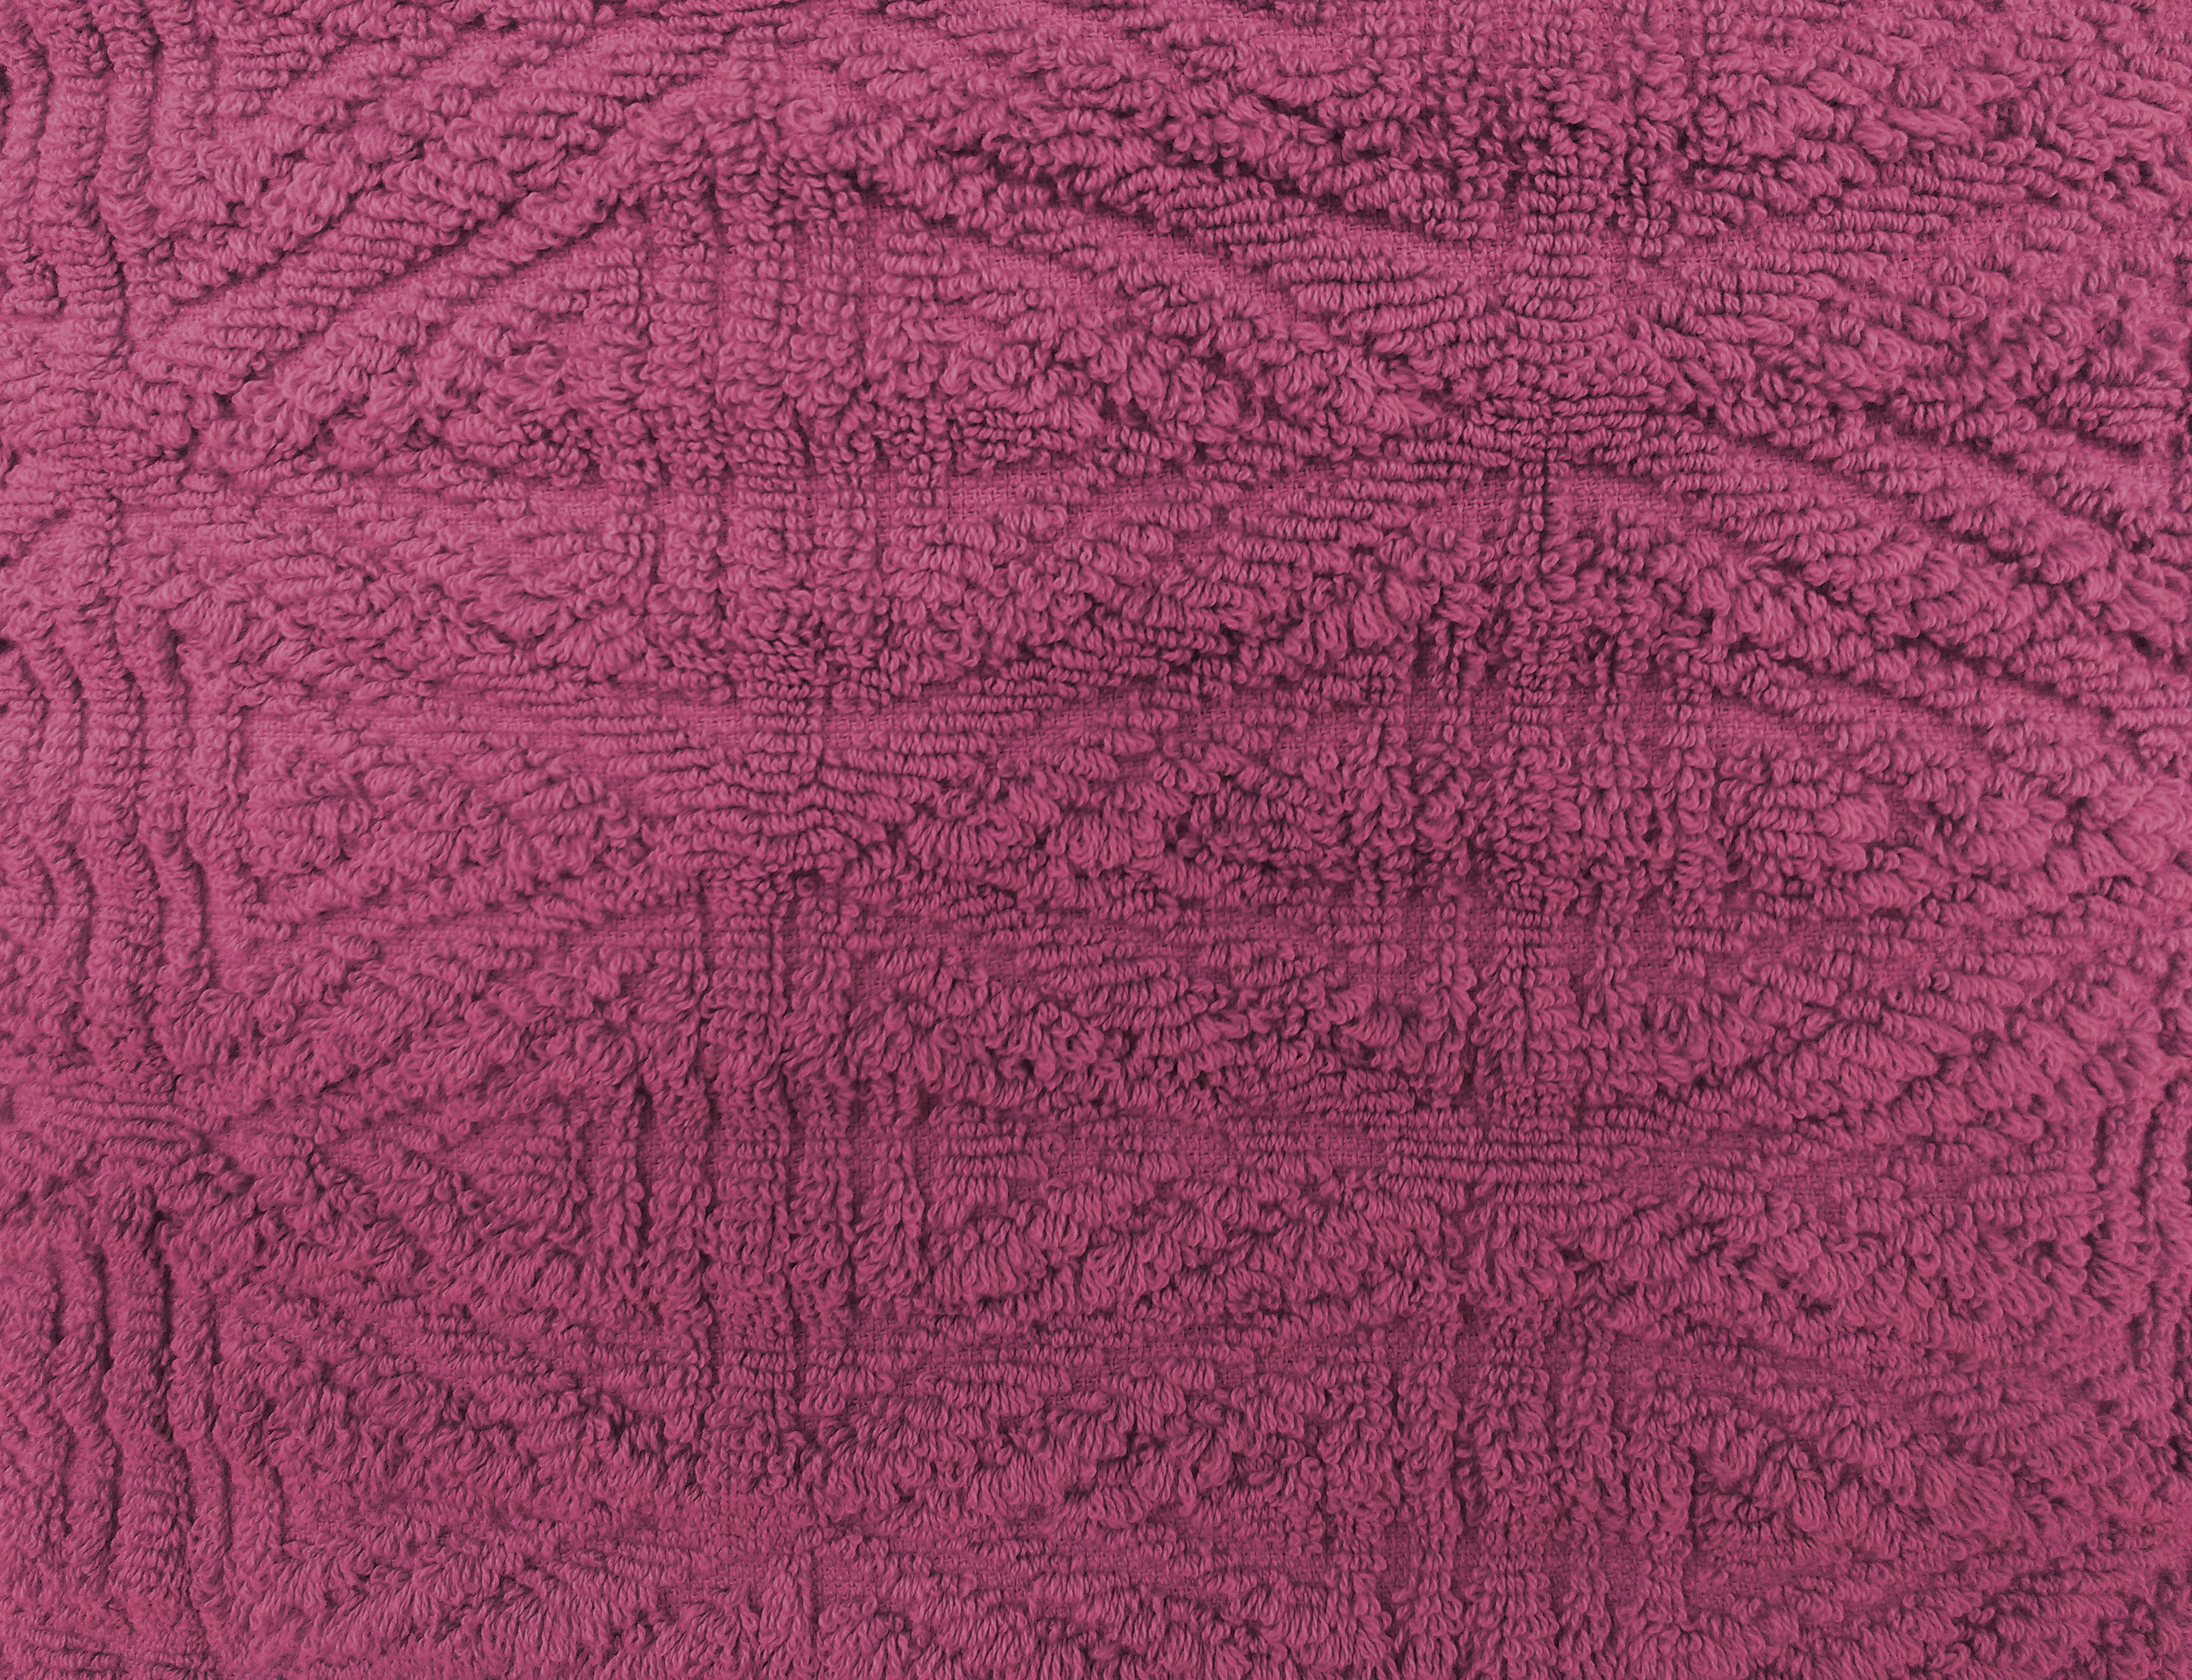 Mauve Textured Throw Rug Close Up Picture Free